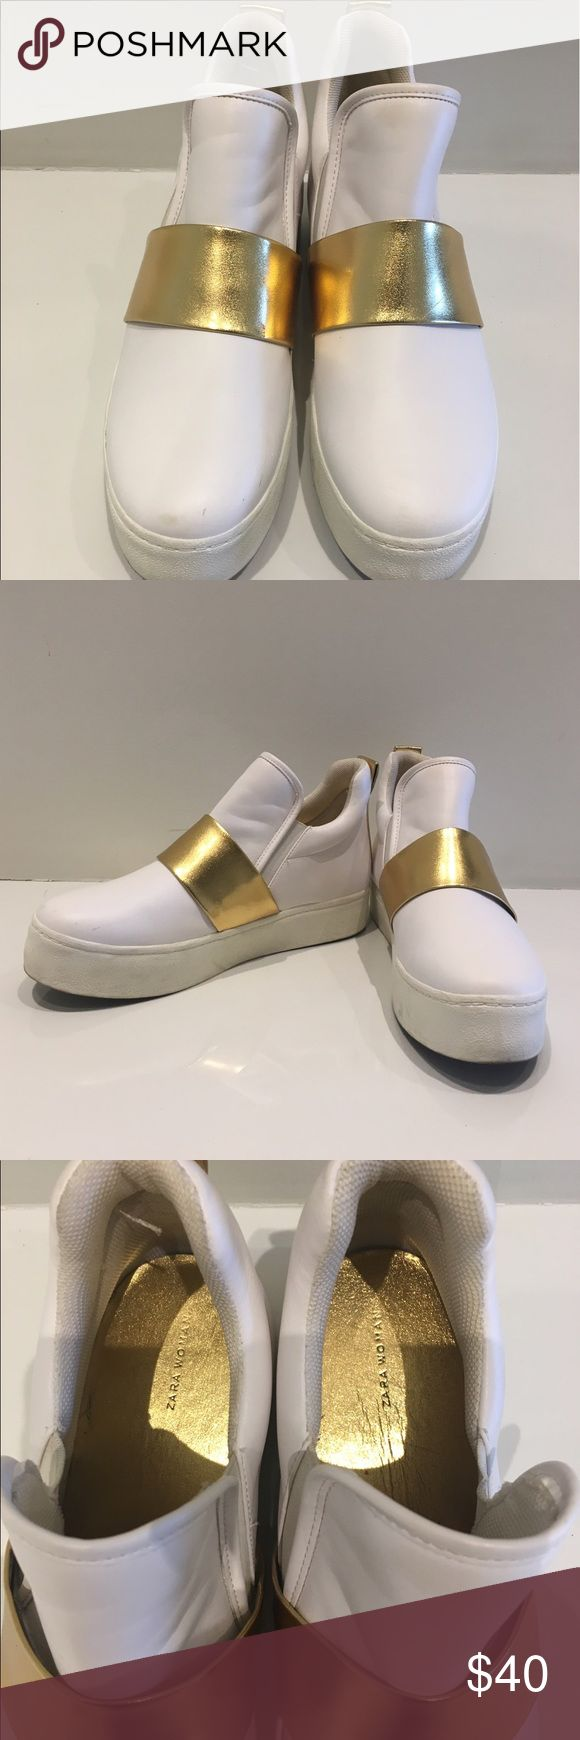 White and Gold High Top Platform Sneakers!✨😎 Good Condition!! Worn once! White and Gold Cool High top Platform Sneakers! I usually wear an 8. Zara 39 fits like an 8😎✨🖤 Zara Shoes Sneakers